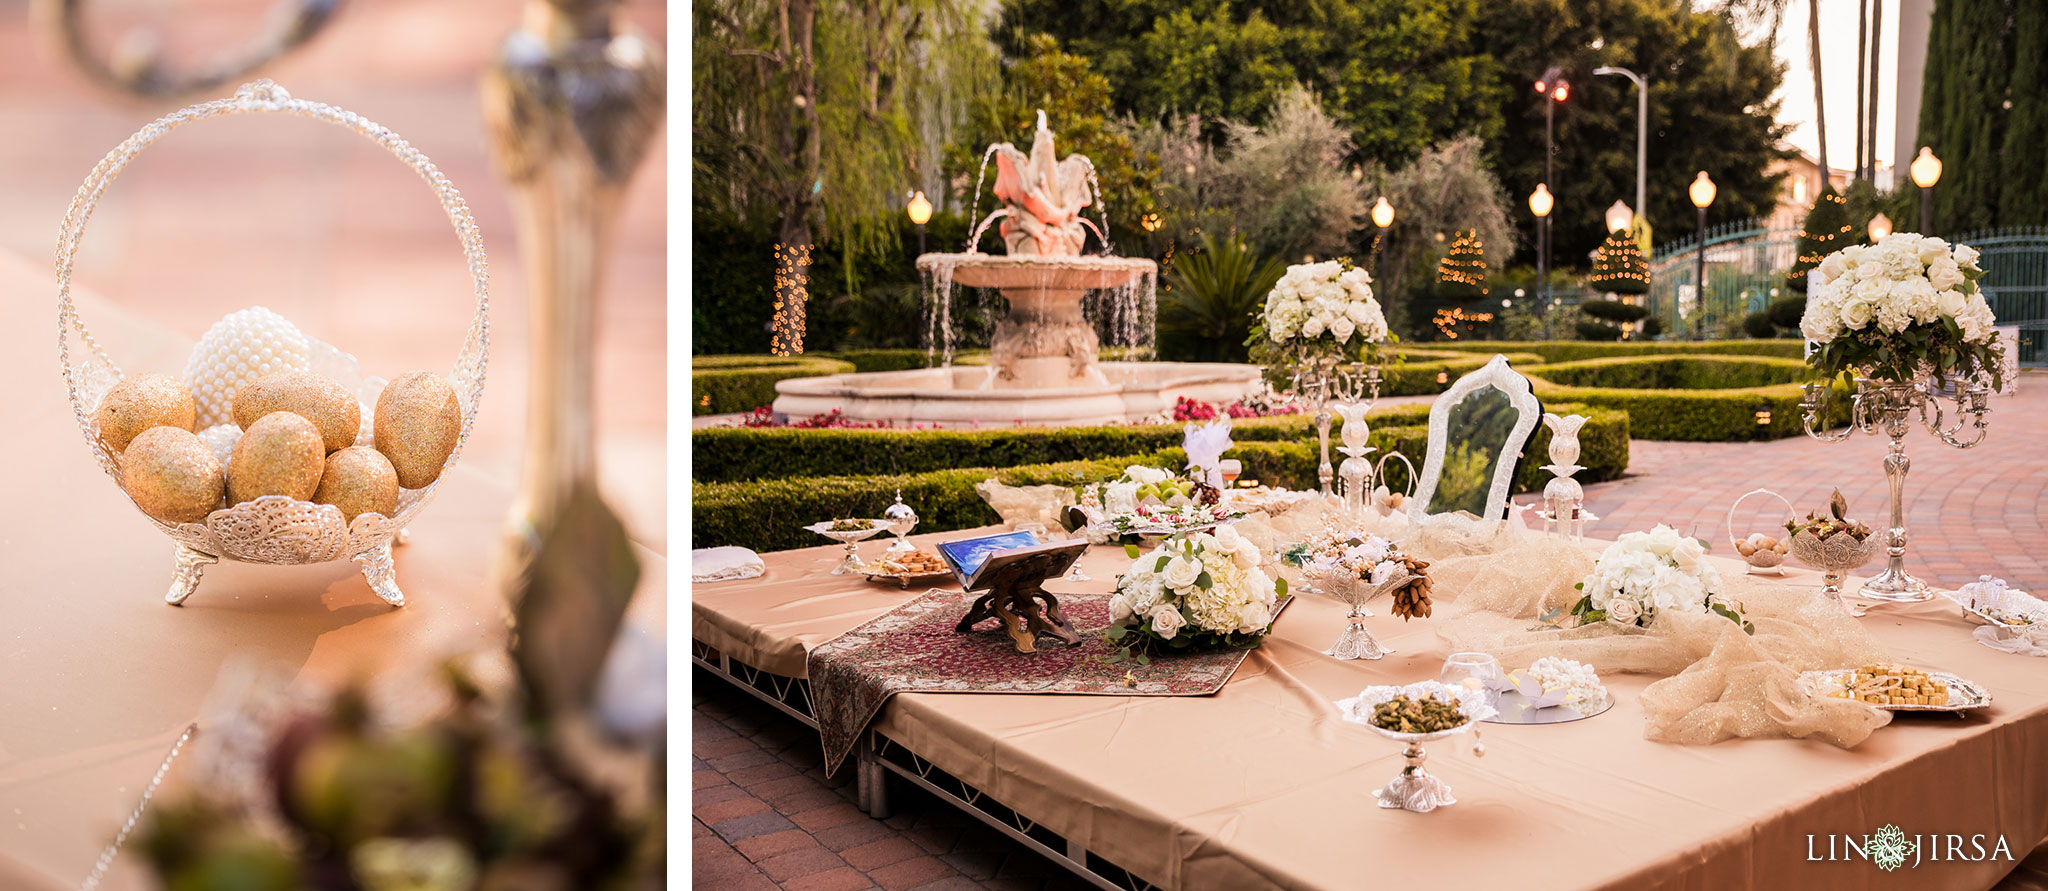 014 taglyan complex los angeles persian wedding photography